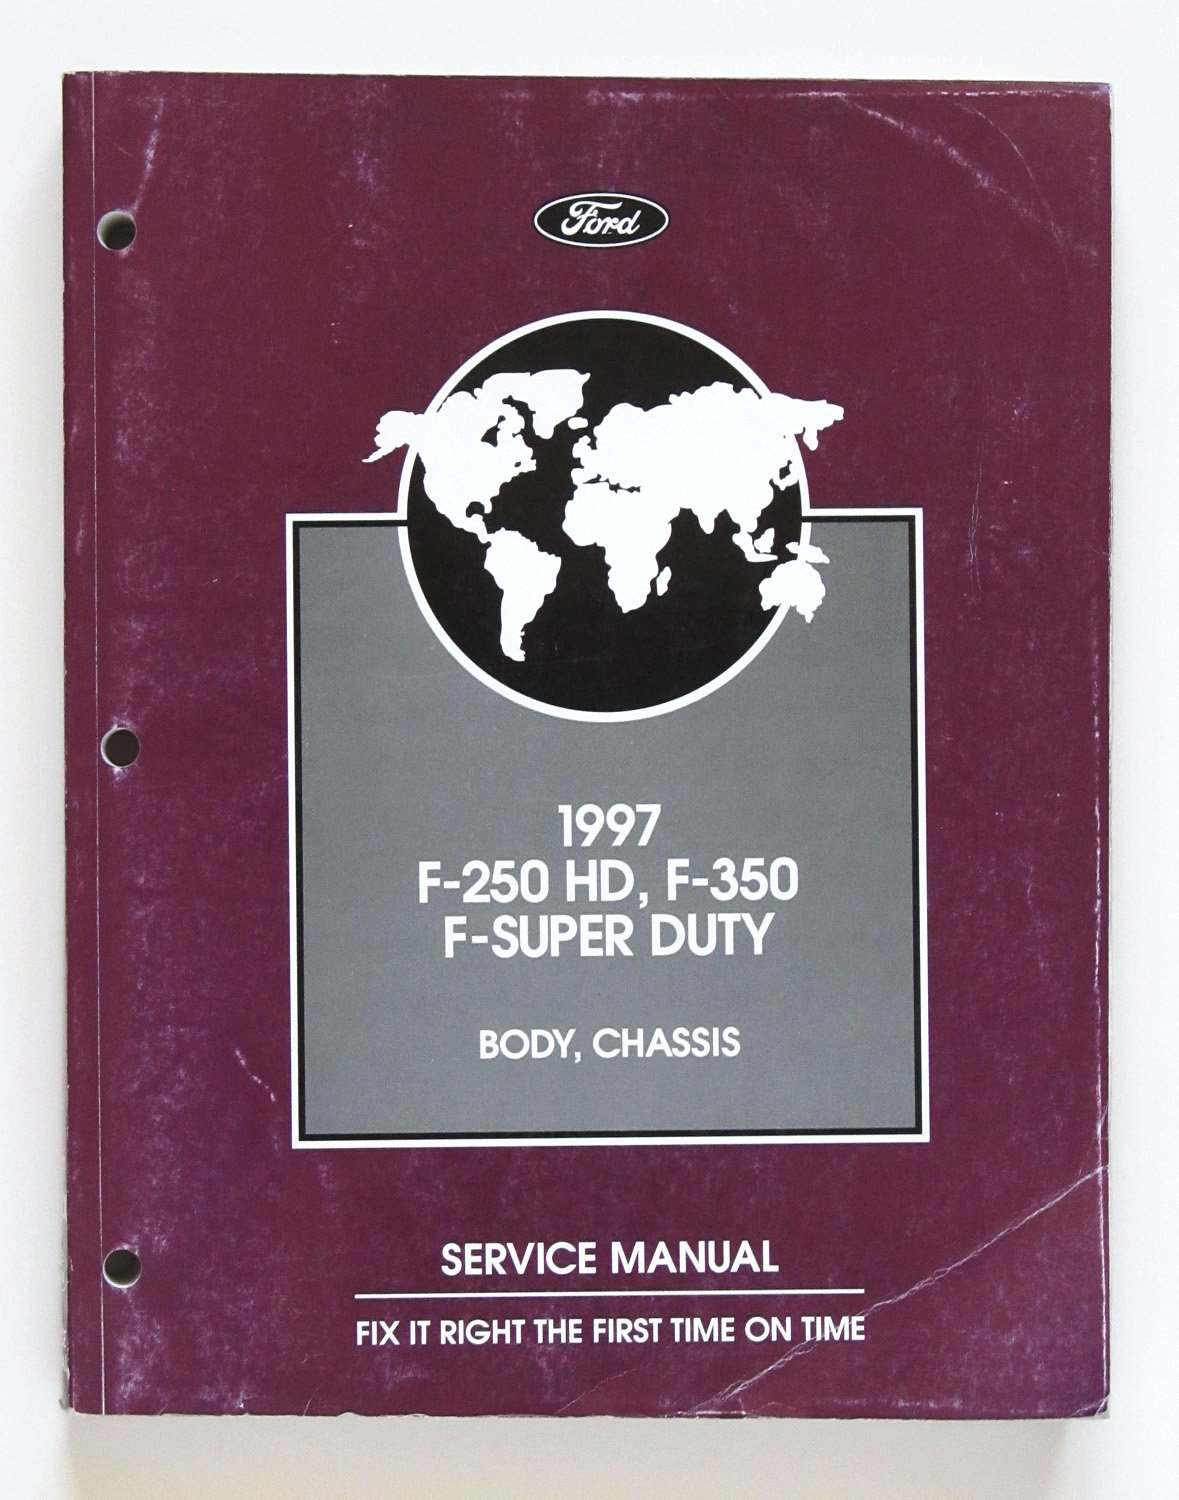 1997 Official Ford Motor Company Service Manual - Ford F-250 HD, F-350, F Super  Duty - Body $ Chassis - Part Number FCS12107971: Ford Motor Company ...